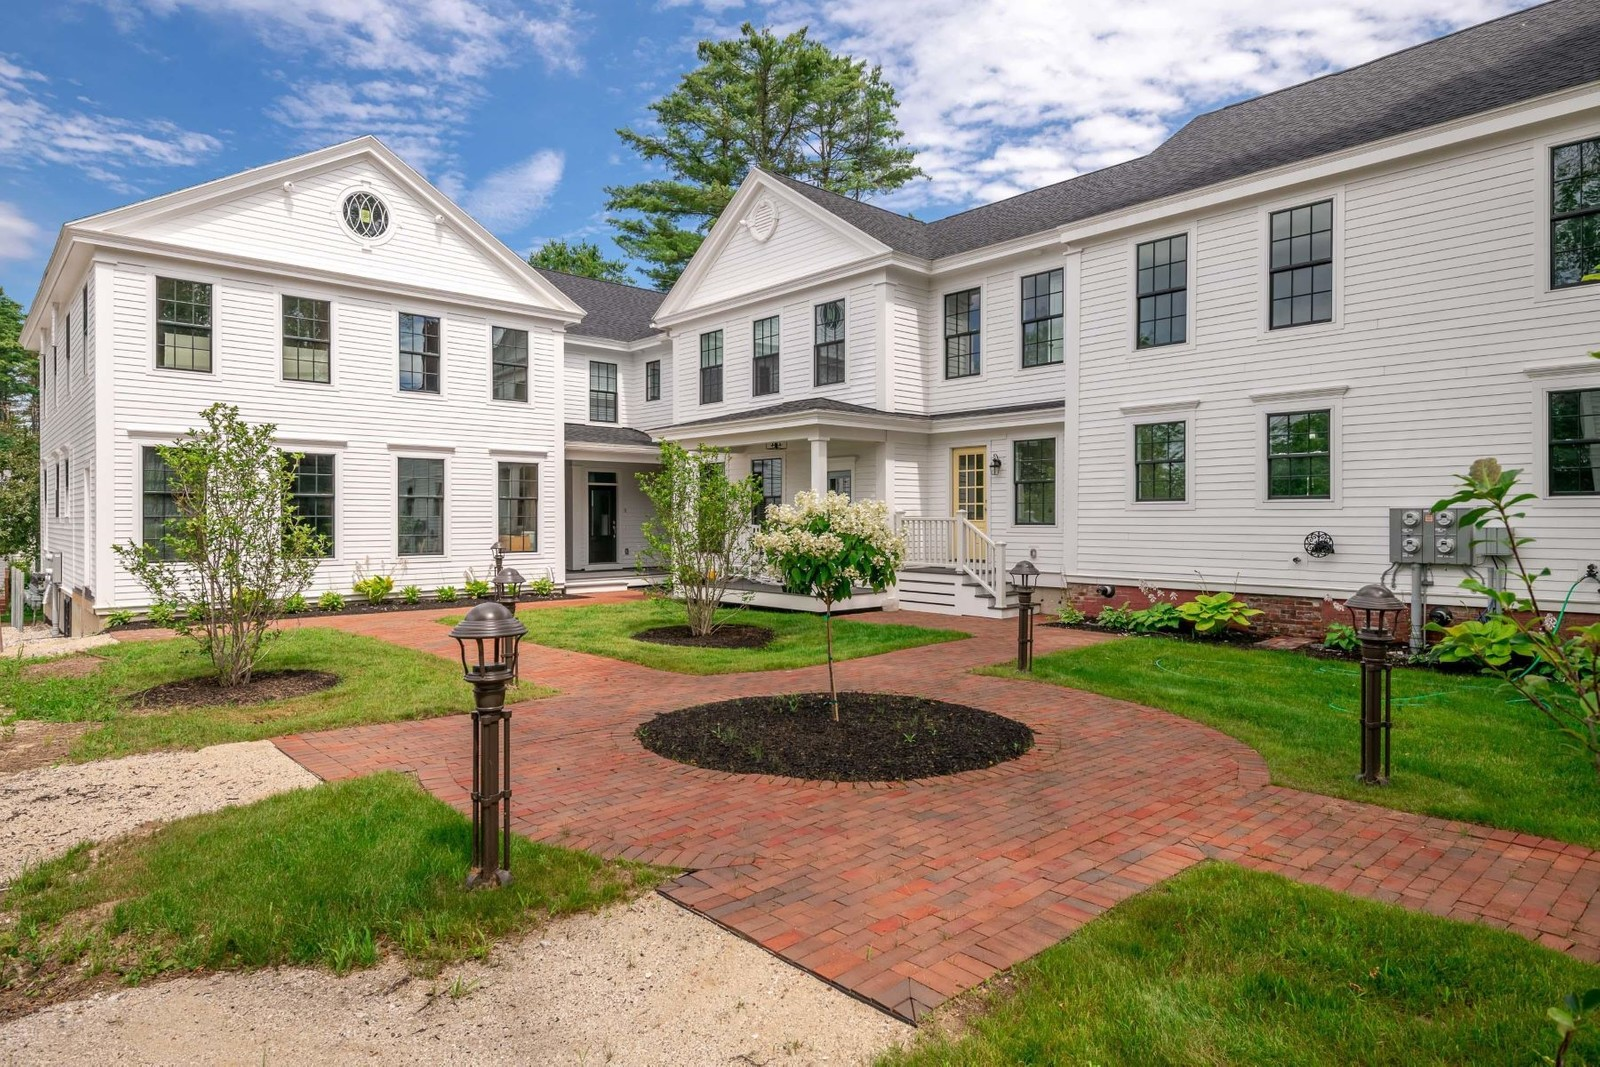 Condominiums for Sale at 149 Main Street, 6, Yarmouth, ME 04096